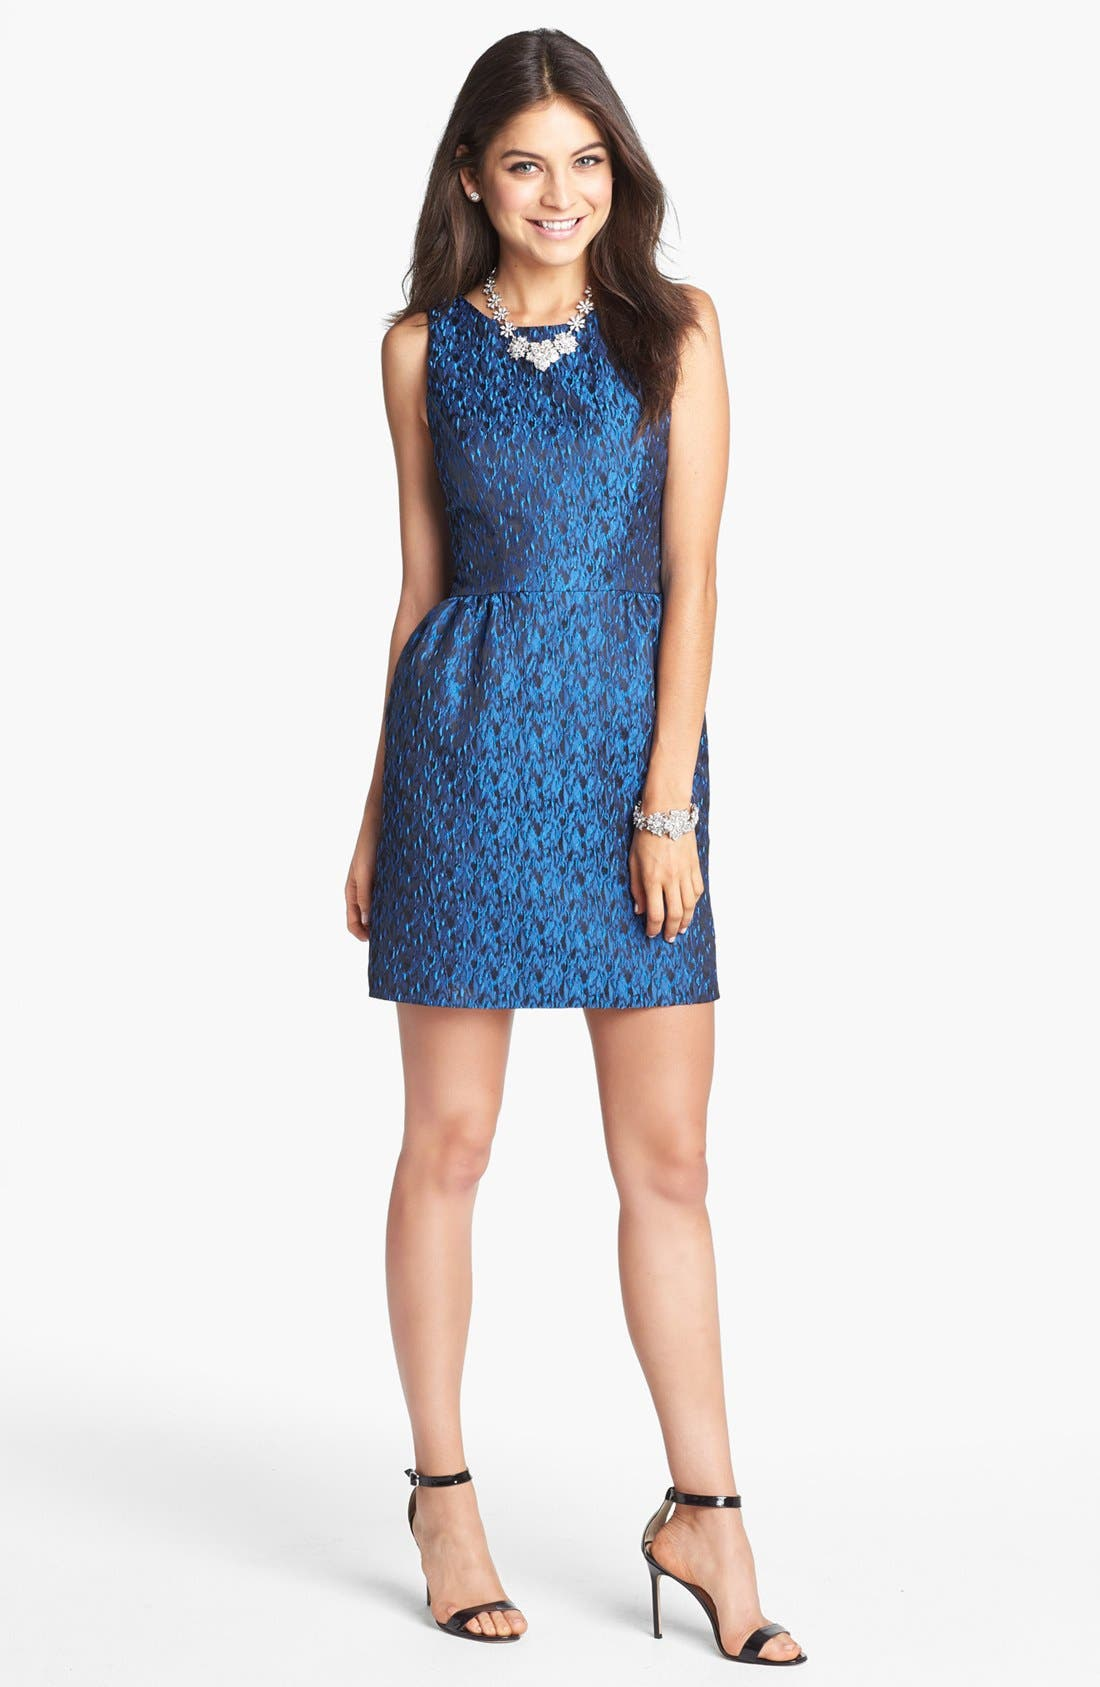 Alternate Image 1 Selected - ERIN erin fetherston 'Winnie' Jacquard Sheath Dress